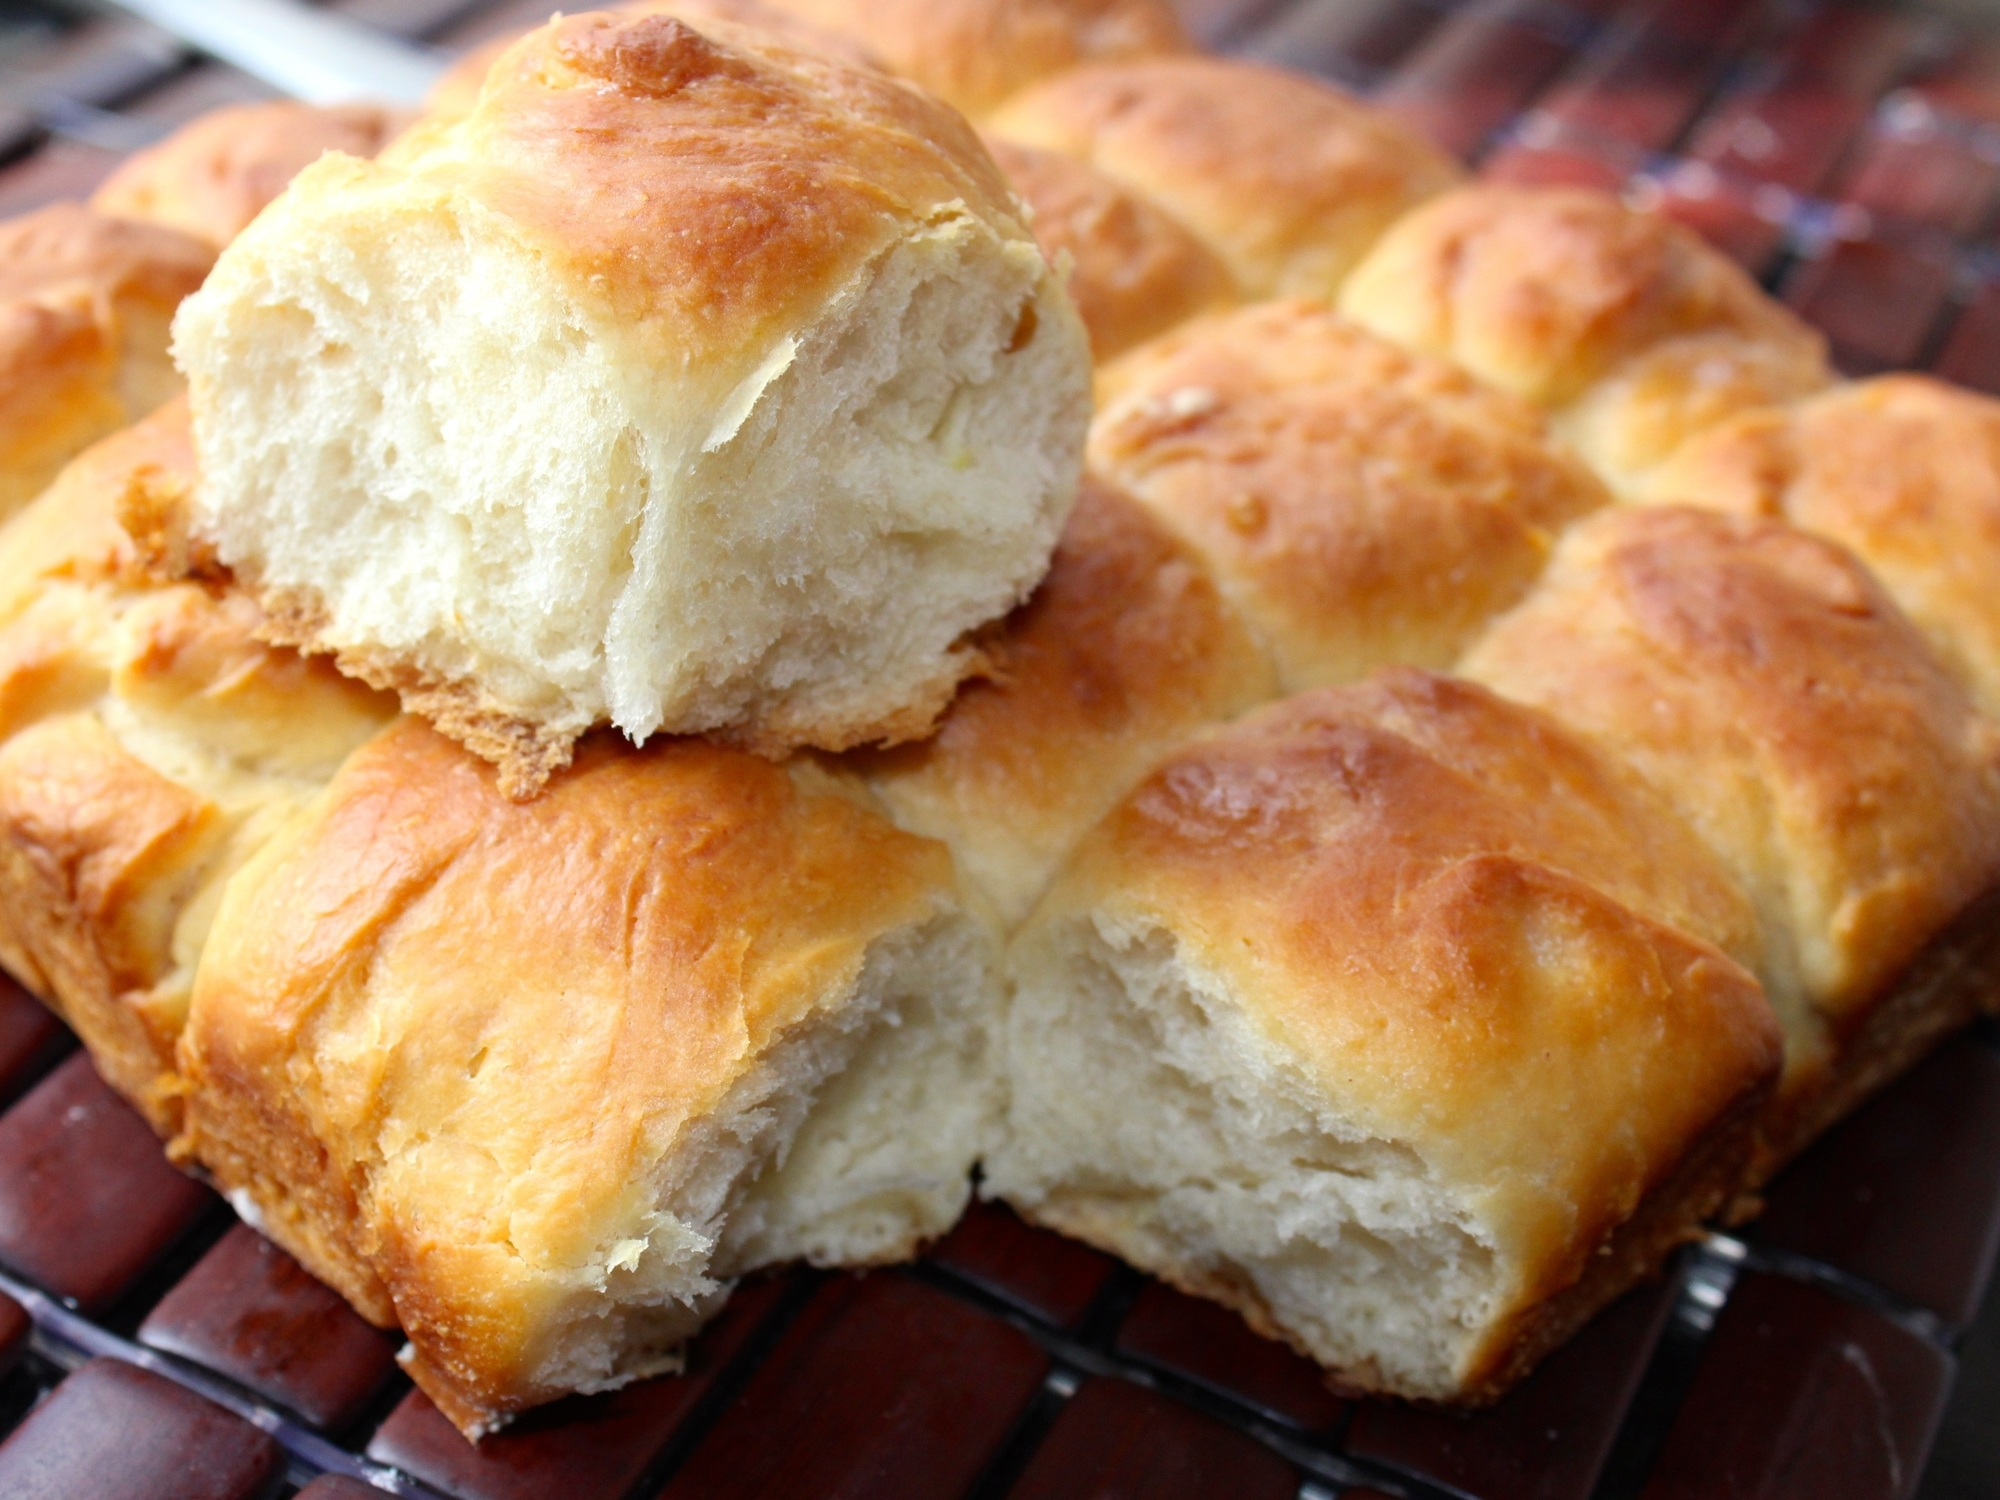 a baking tray of Indian pav, or bread rolls